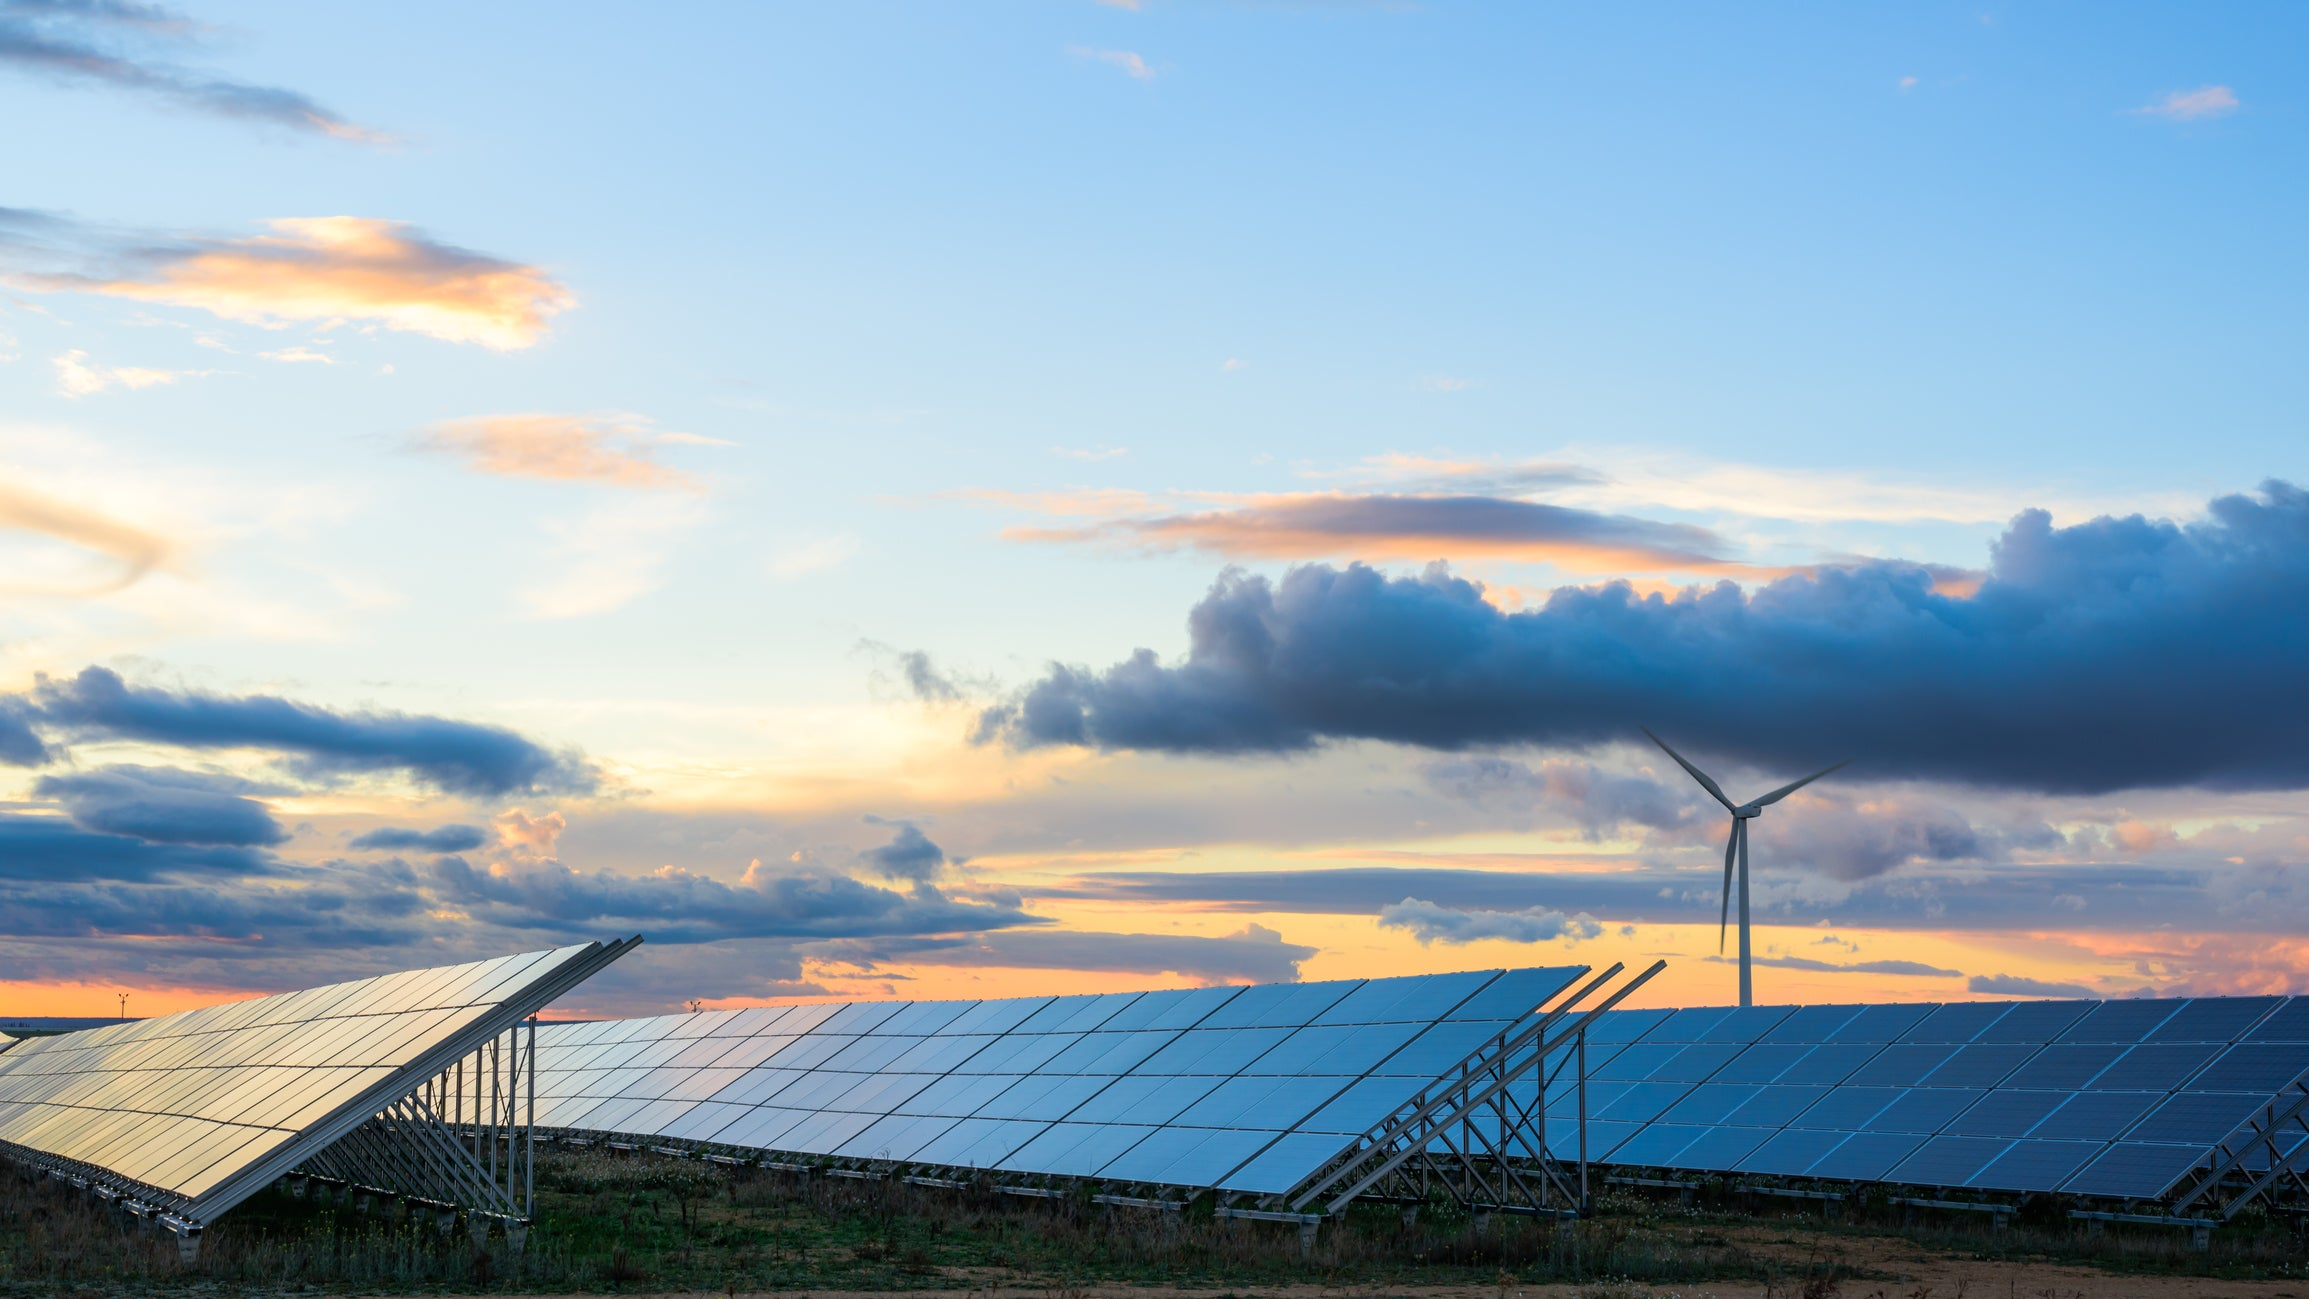 This High-Yielding Renewable Energy Stock Has Lots More Dividend Growth Ahead